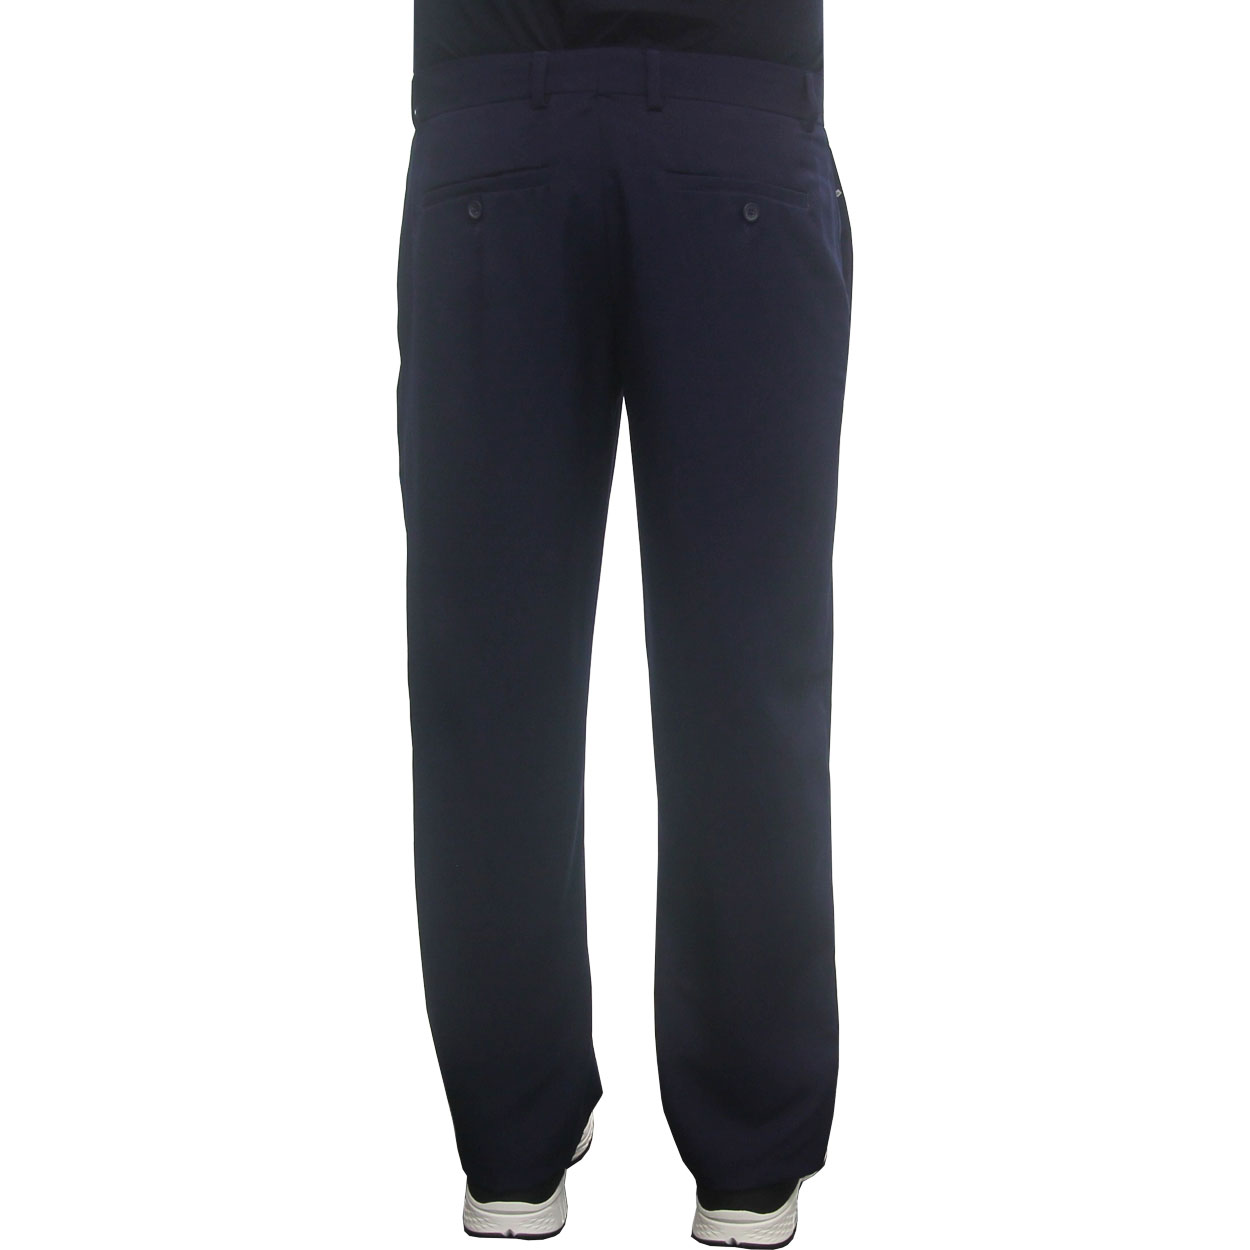 Geoffrey-Beene-Men-039-s-Off-the-Cuff-Flat-Front-Pants-NEW thumbnail 4